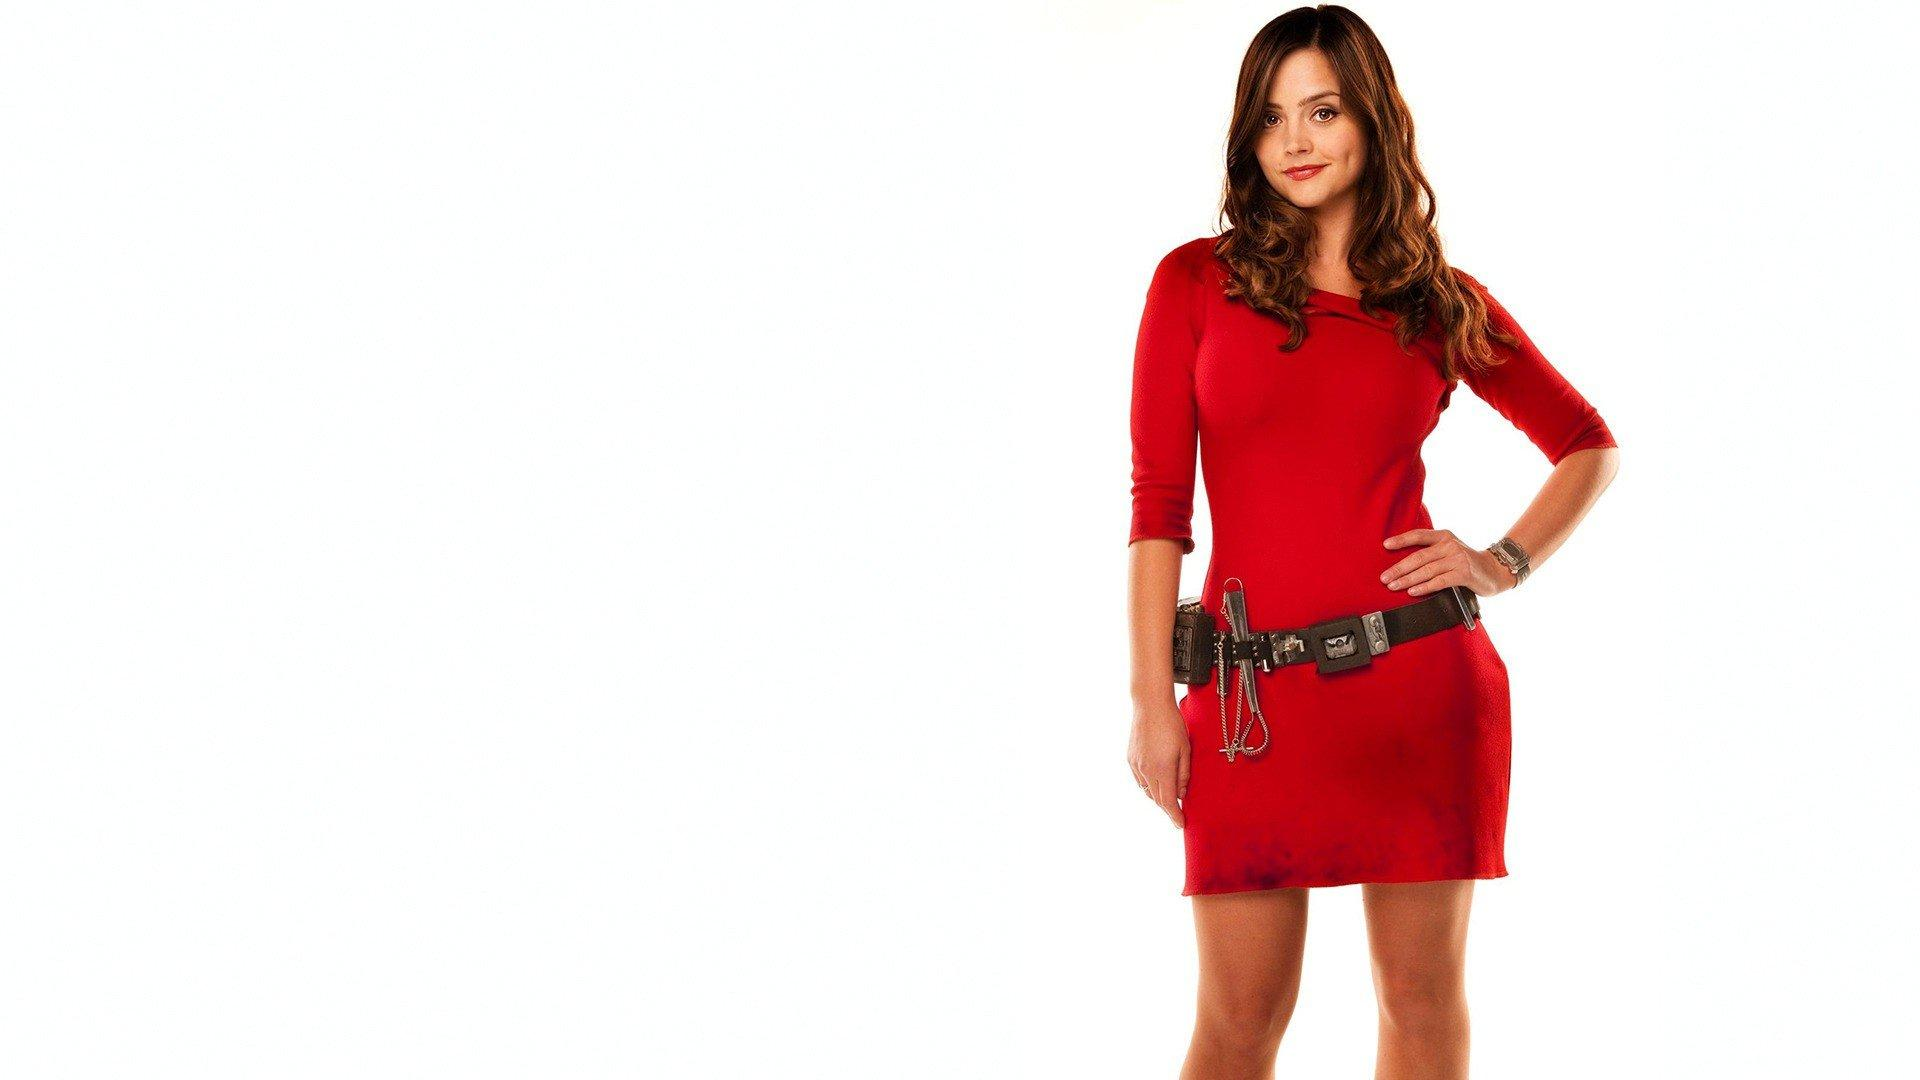 1920x1080 - Jenna-Louise Coleman Wallpapers 33